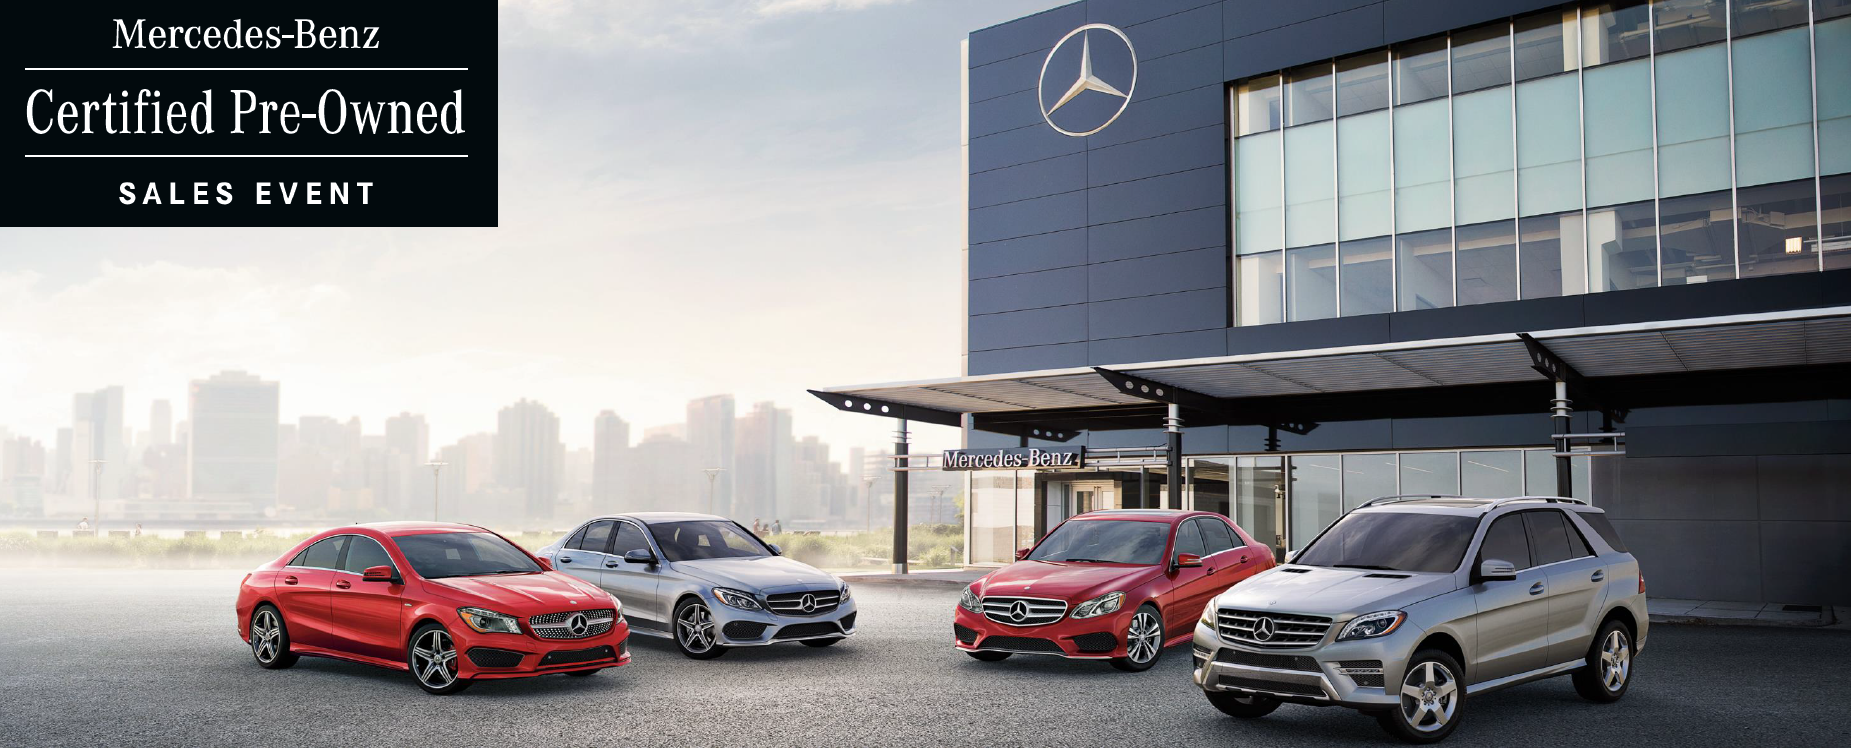 Nice Why Choose Mercedes Benz Certified Pre Owned? Our Vehicles Need To Pass One  Of The Most Demanding Certification Processes In The Industry.